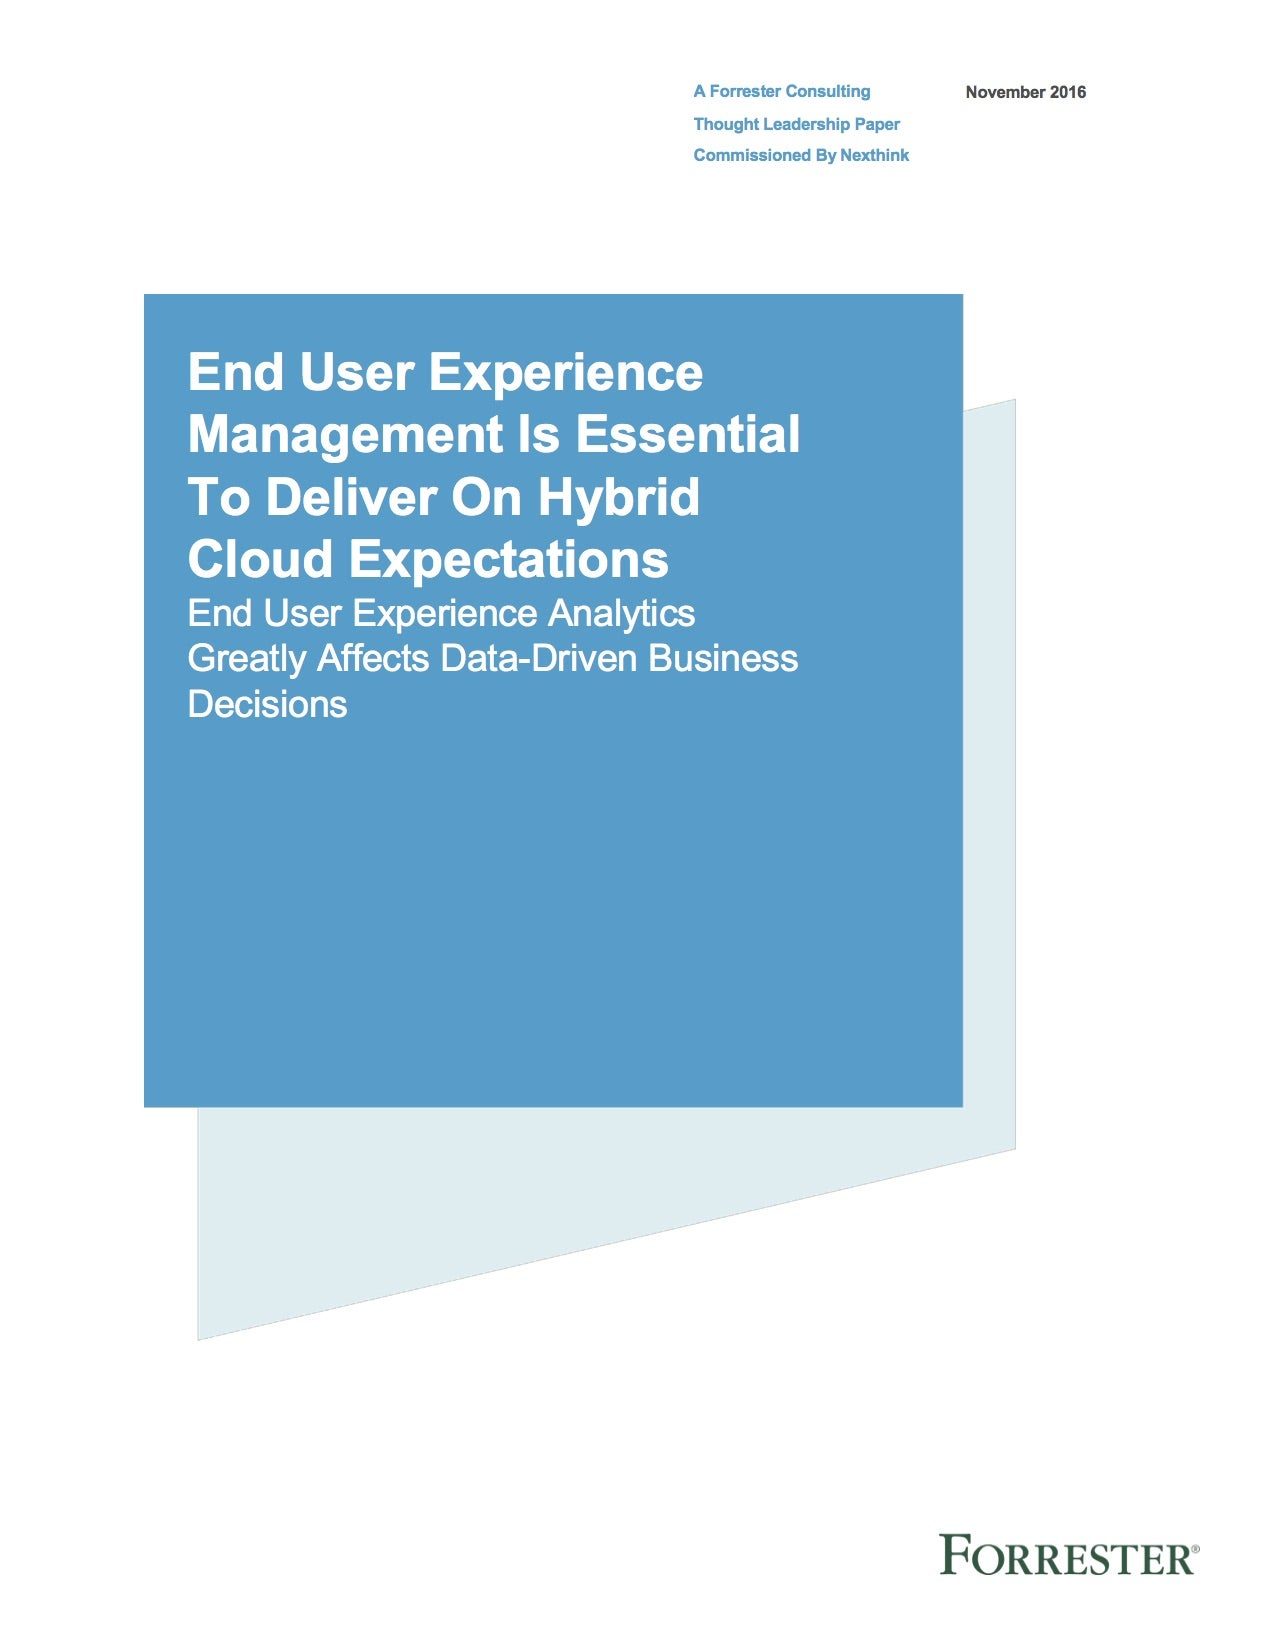 Forrester Research: End-user Experience Management is the key to delivering Hybrid Cloud Strategy